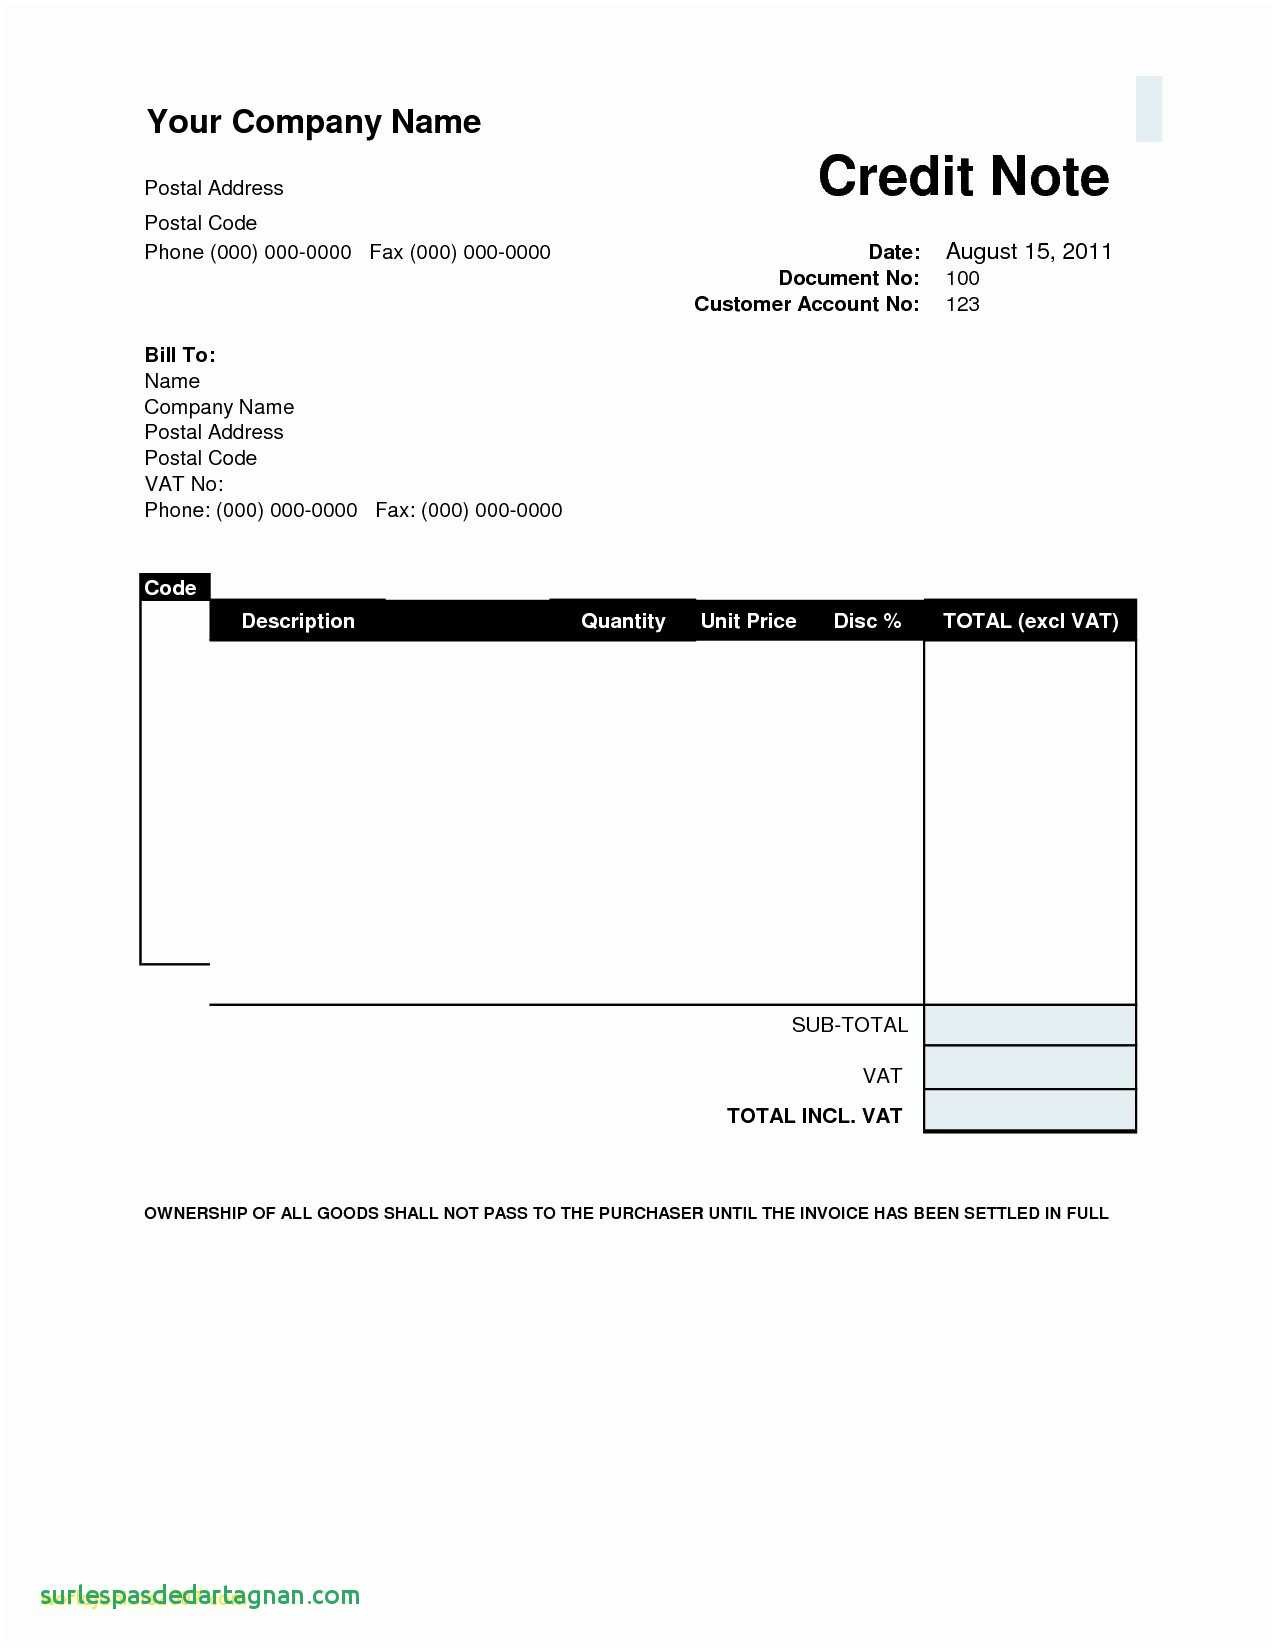 Invoice Templates Printable Free Word Doc | Why Letter - Invoice Templates Printable Free Word Doc